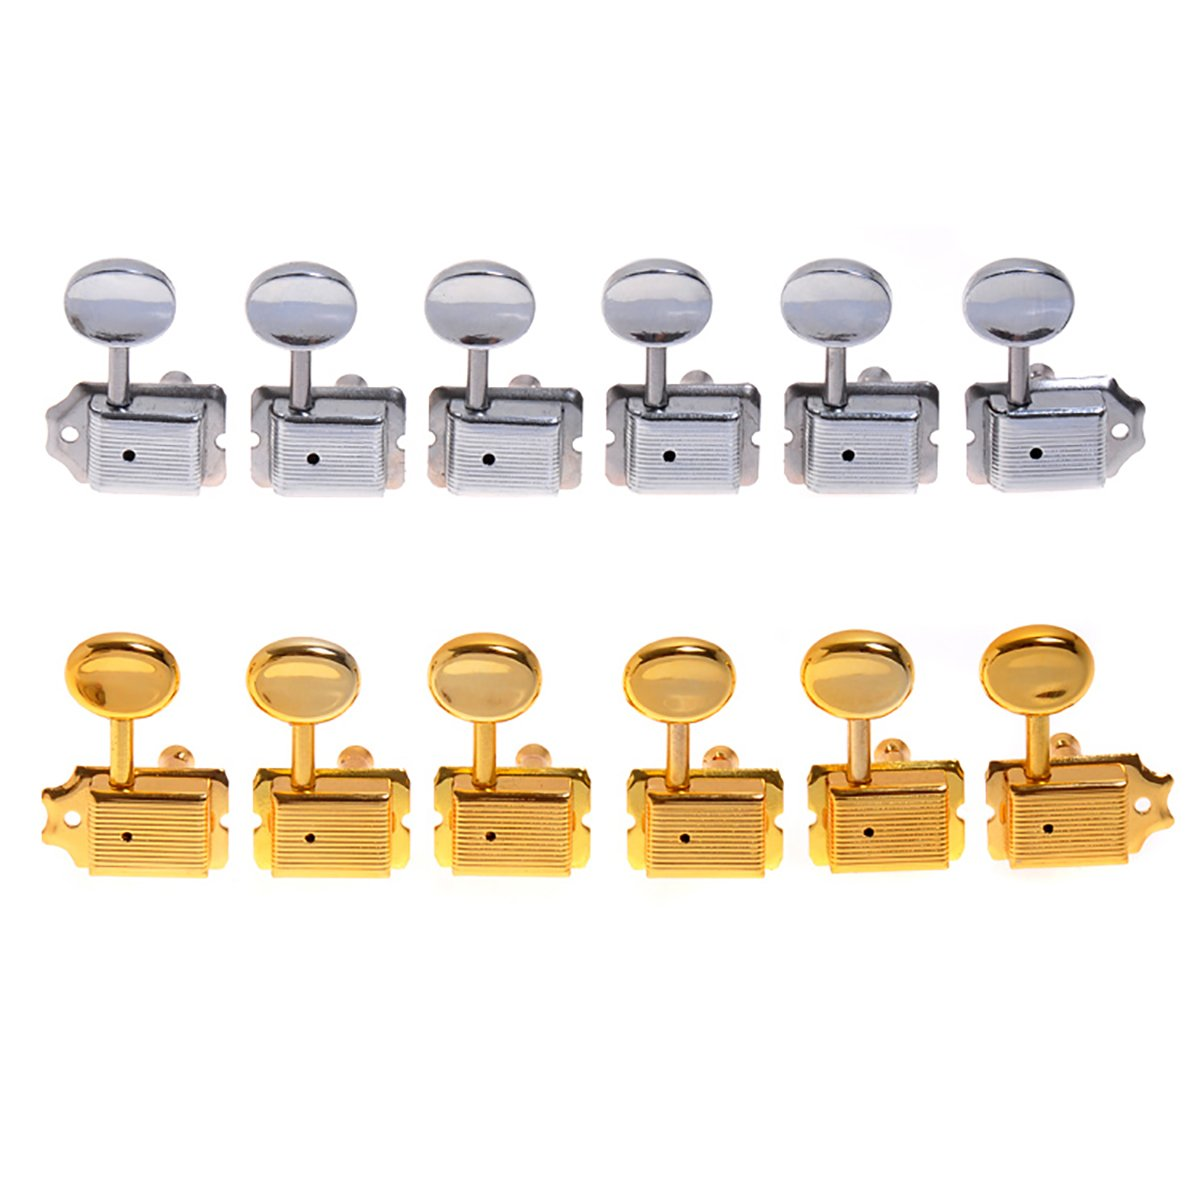 Kmise a7957クローム&ゴールドSemi Closed Electric Guitar Tuning Pegs Machine Heads for Fender交換用、2セット B00S0ZQD3K